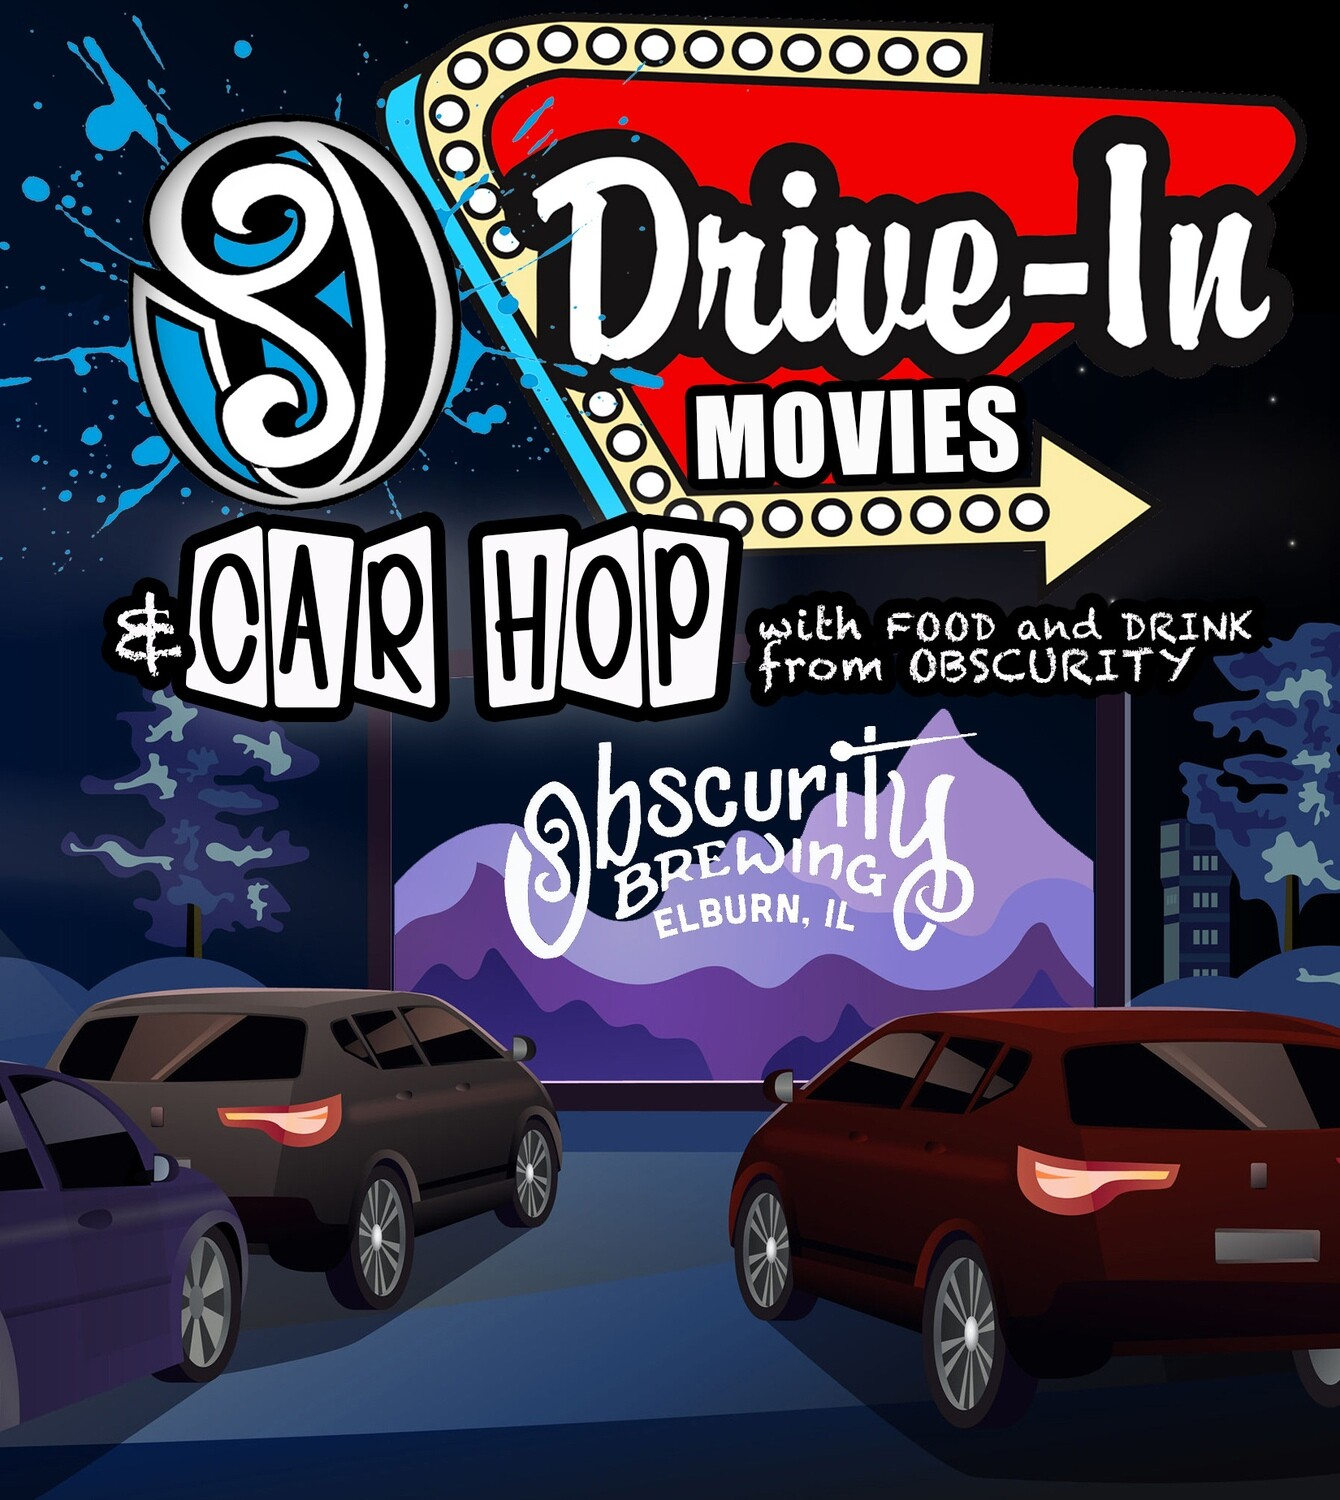 Obscurity Drive In - Friday 1/22 5:30PM The Croods